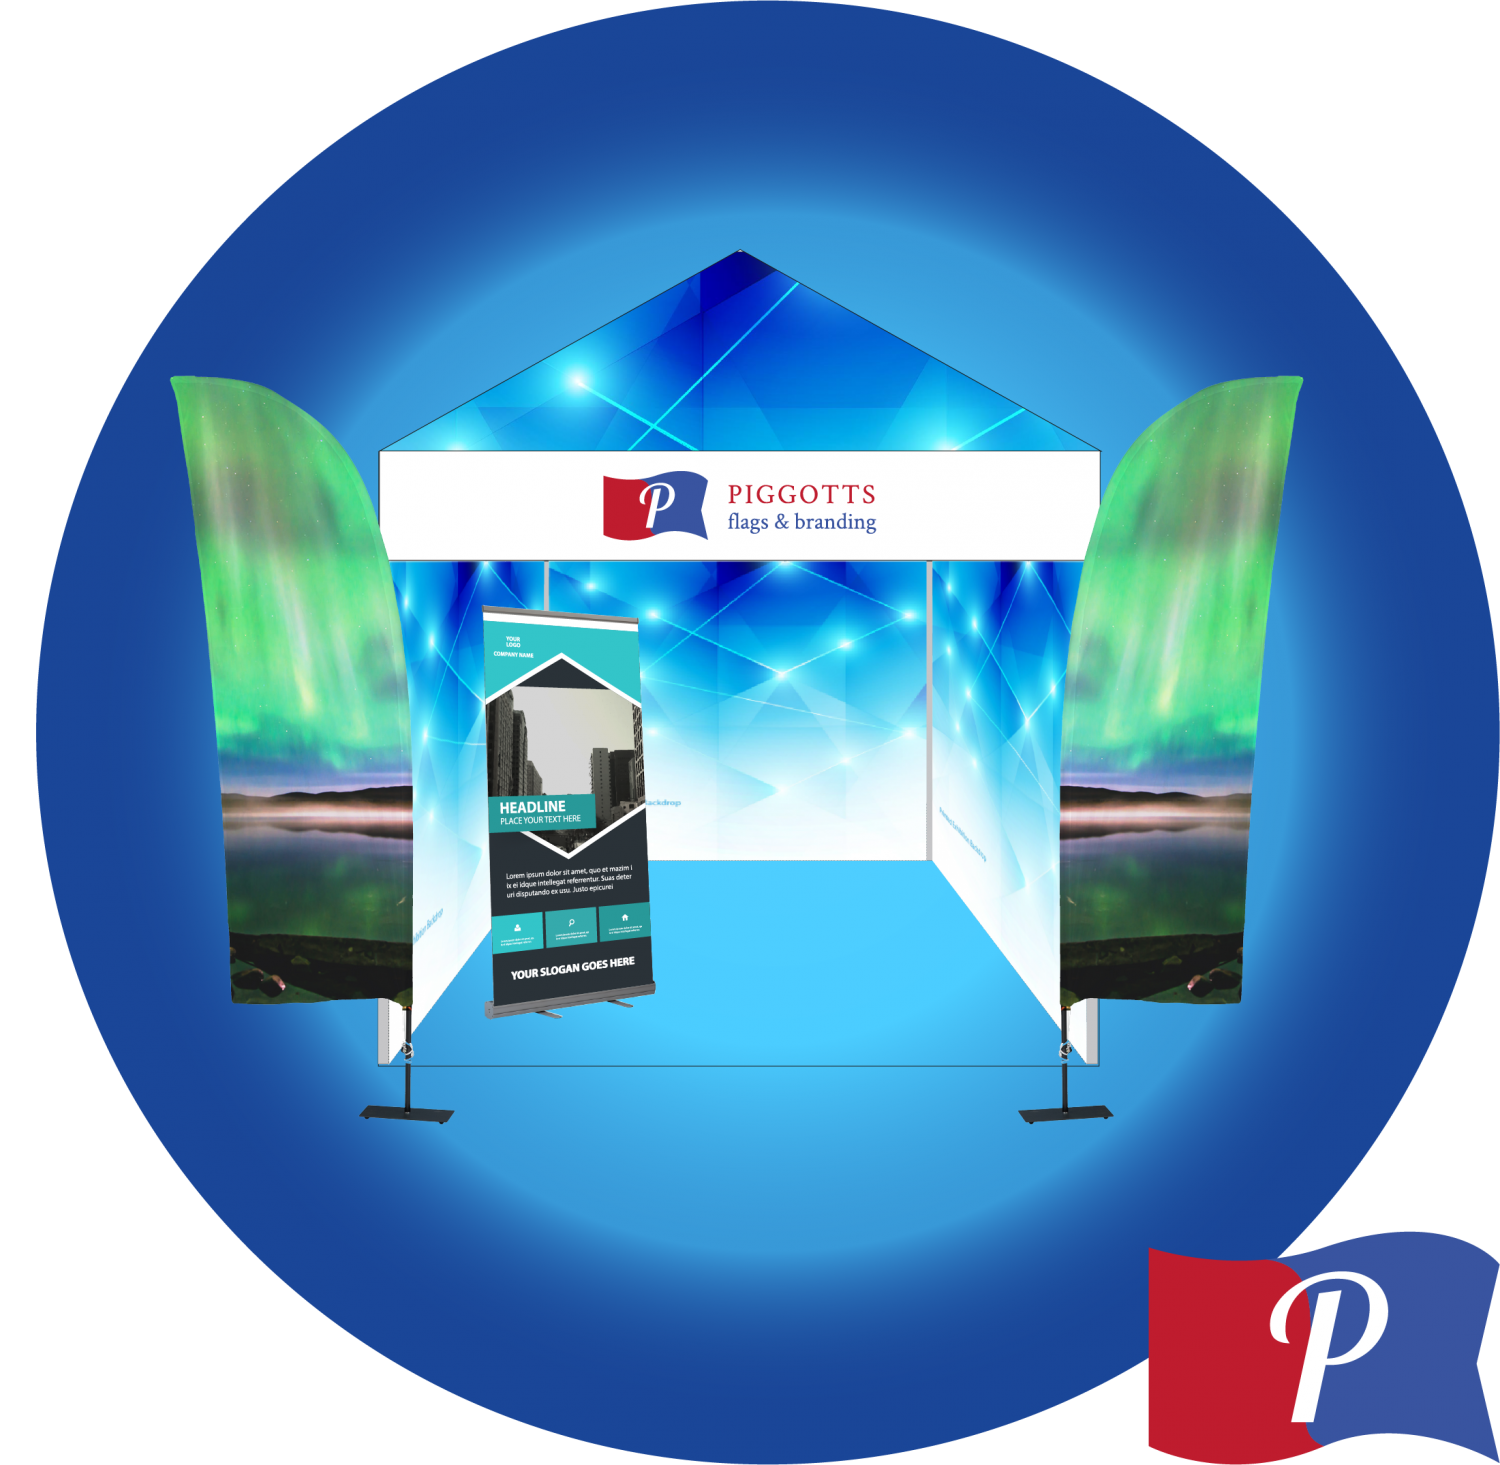 Exhibition, events, displays, branding, conference, piggotts, easy, banners, wall